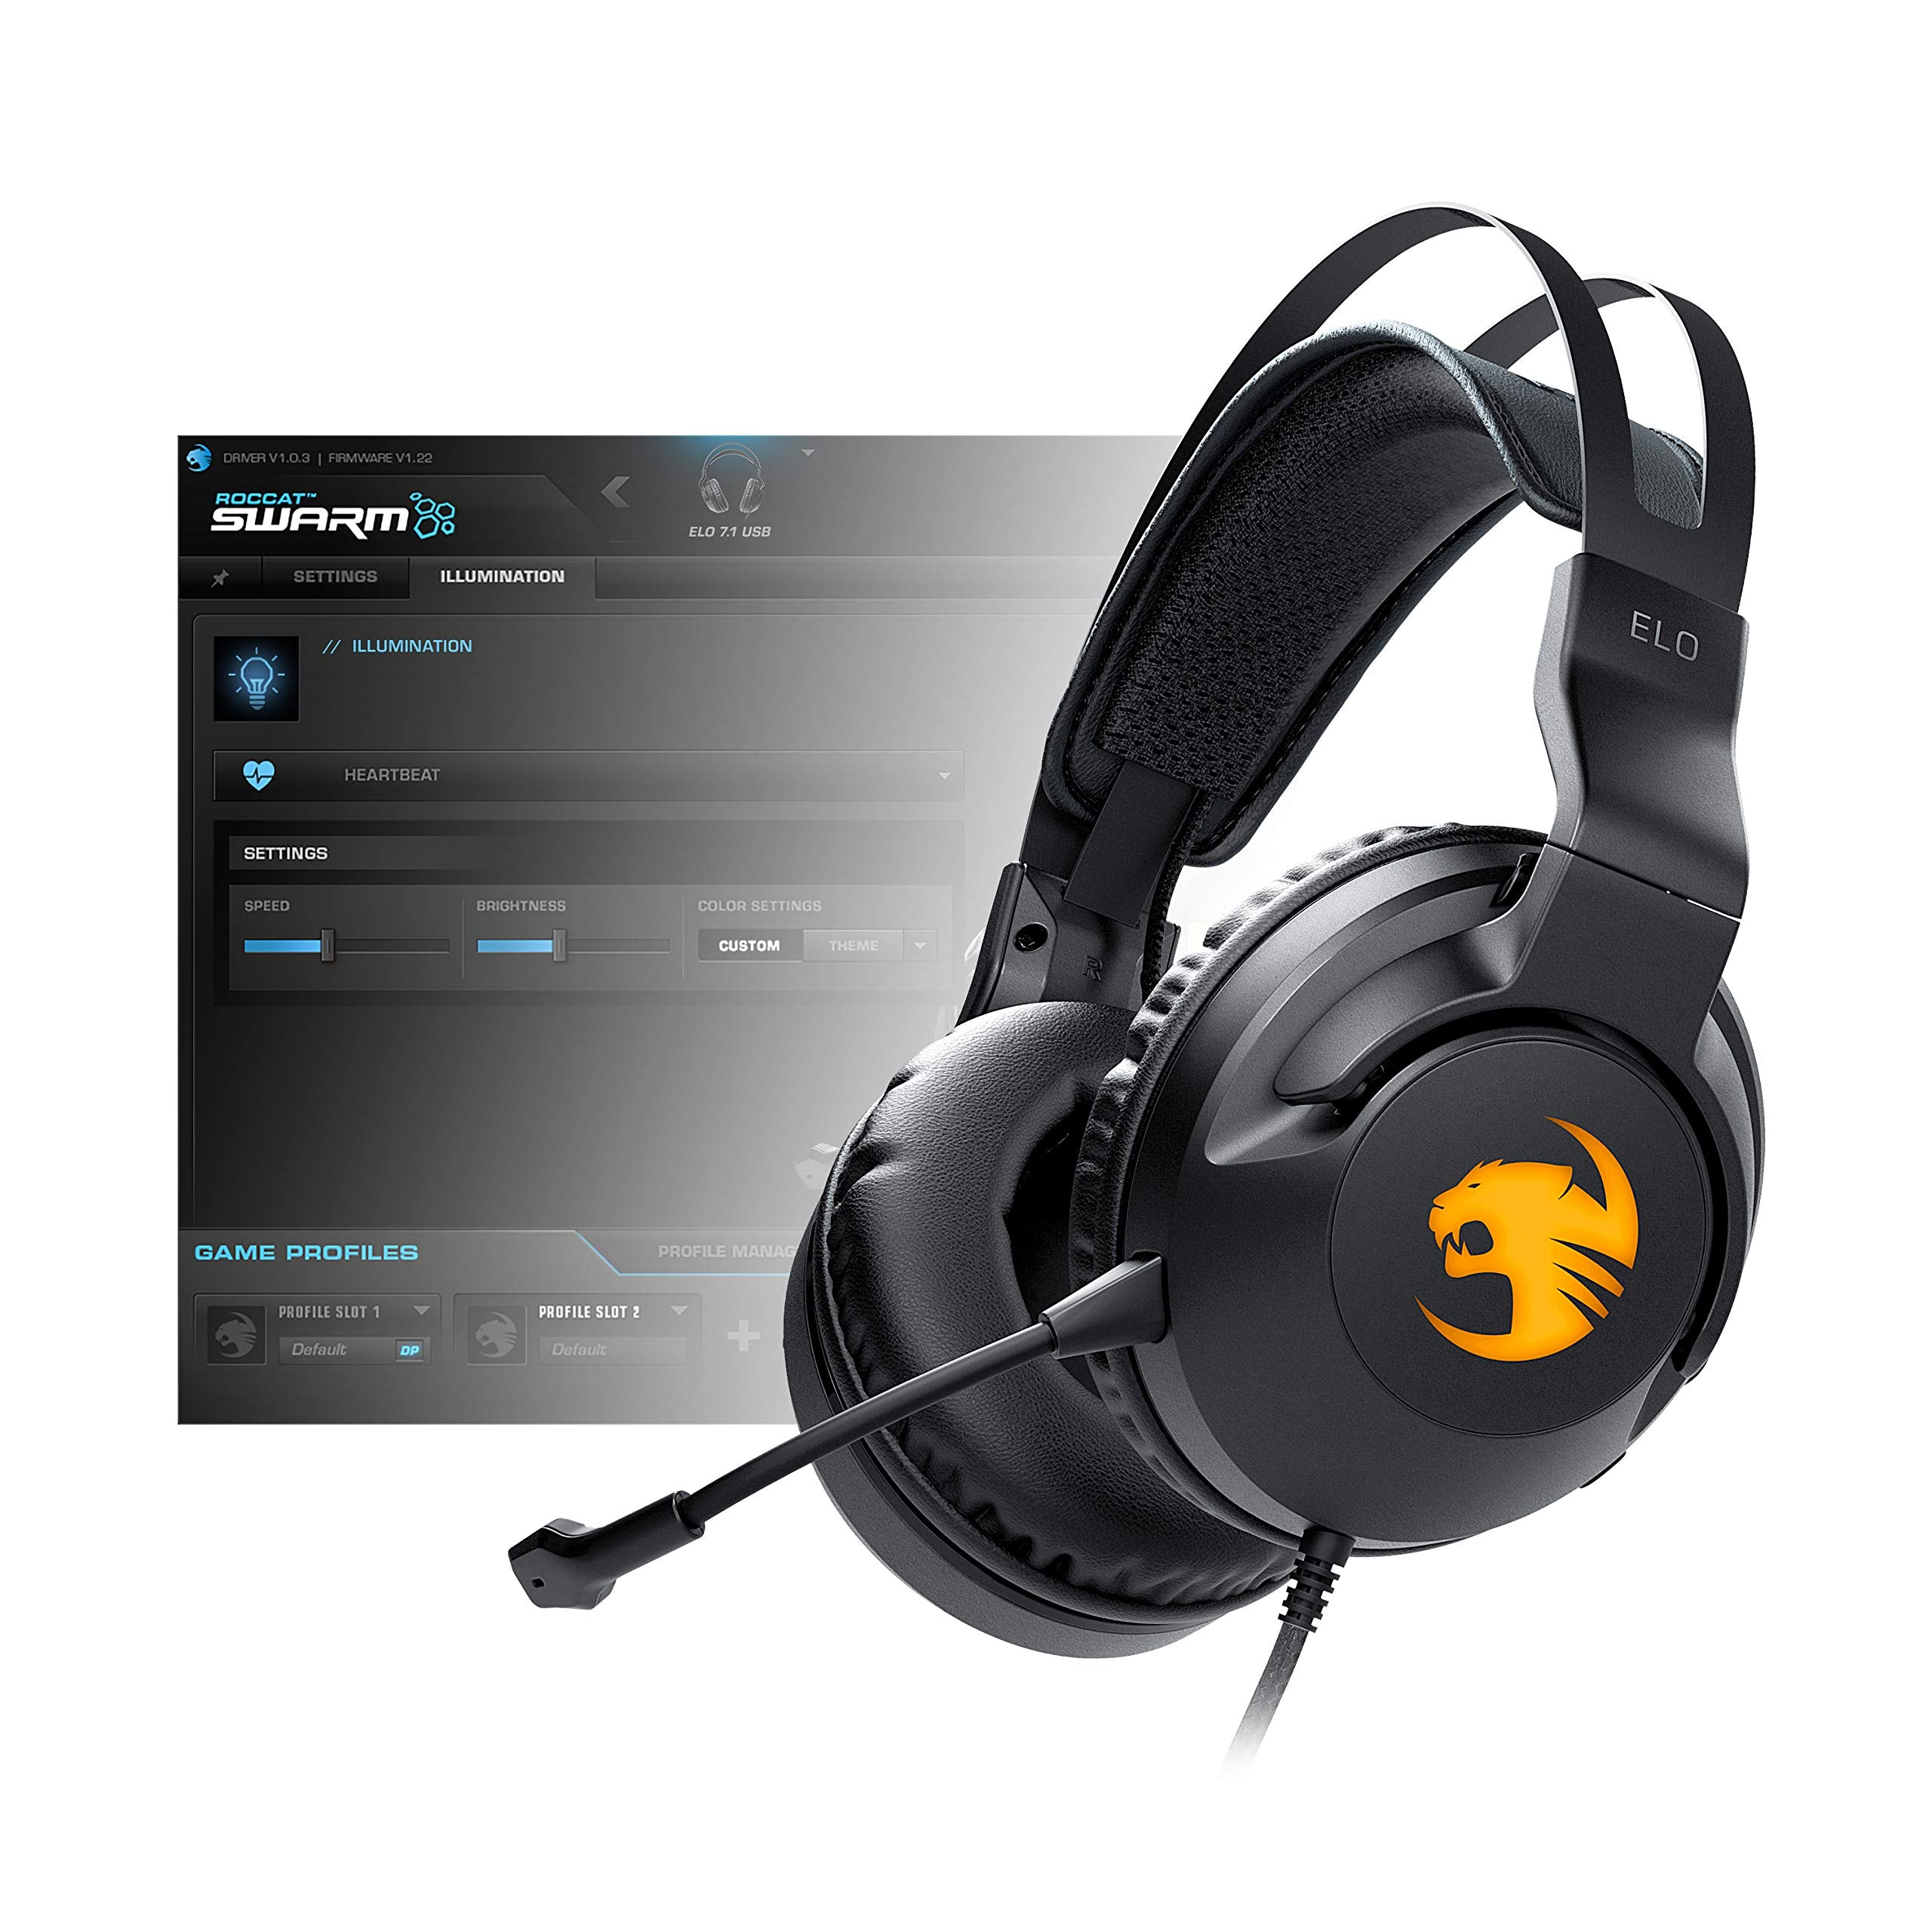 ROCCAT Elo 7.1 USB Surround Sound RGB Gaming Headset, Black